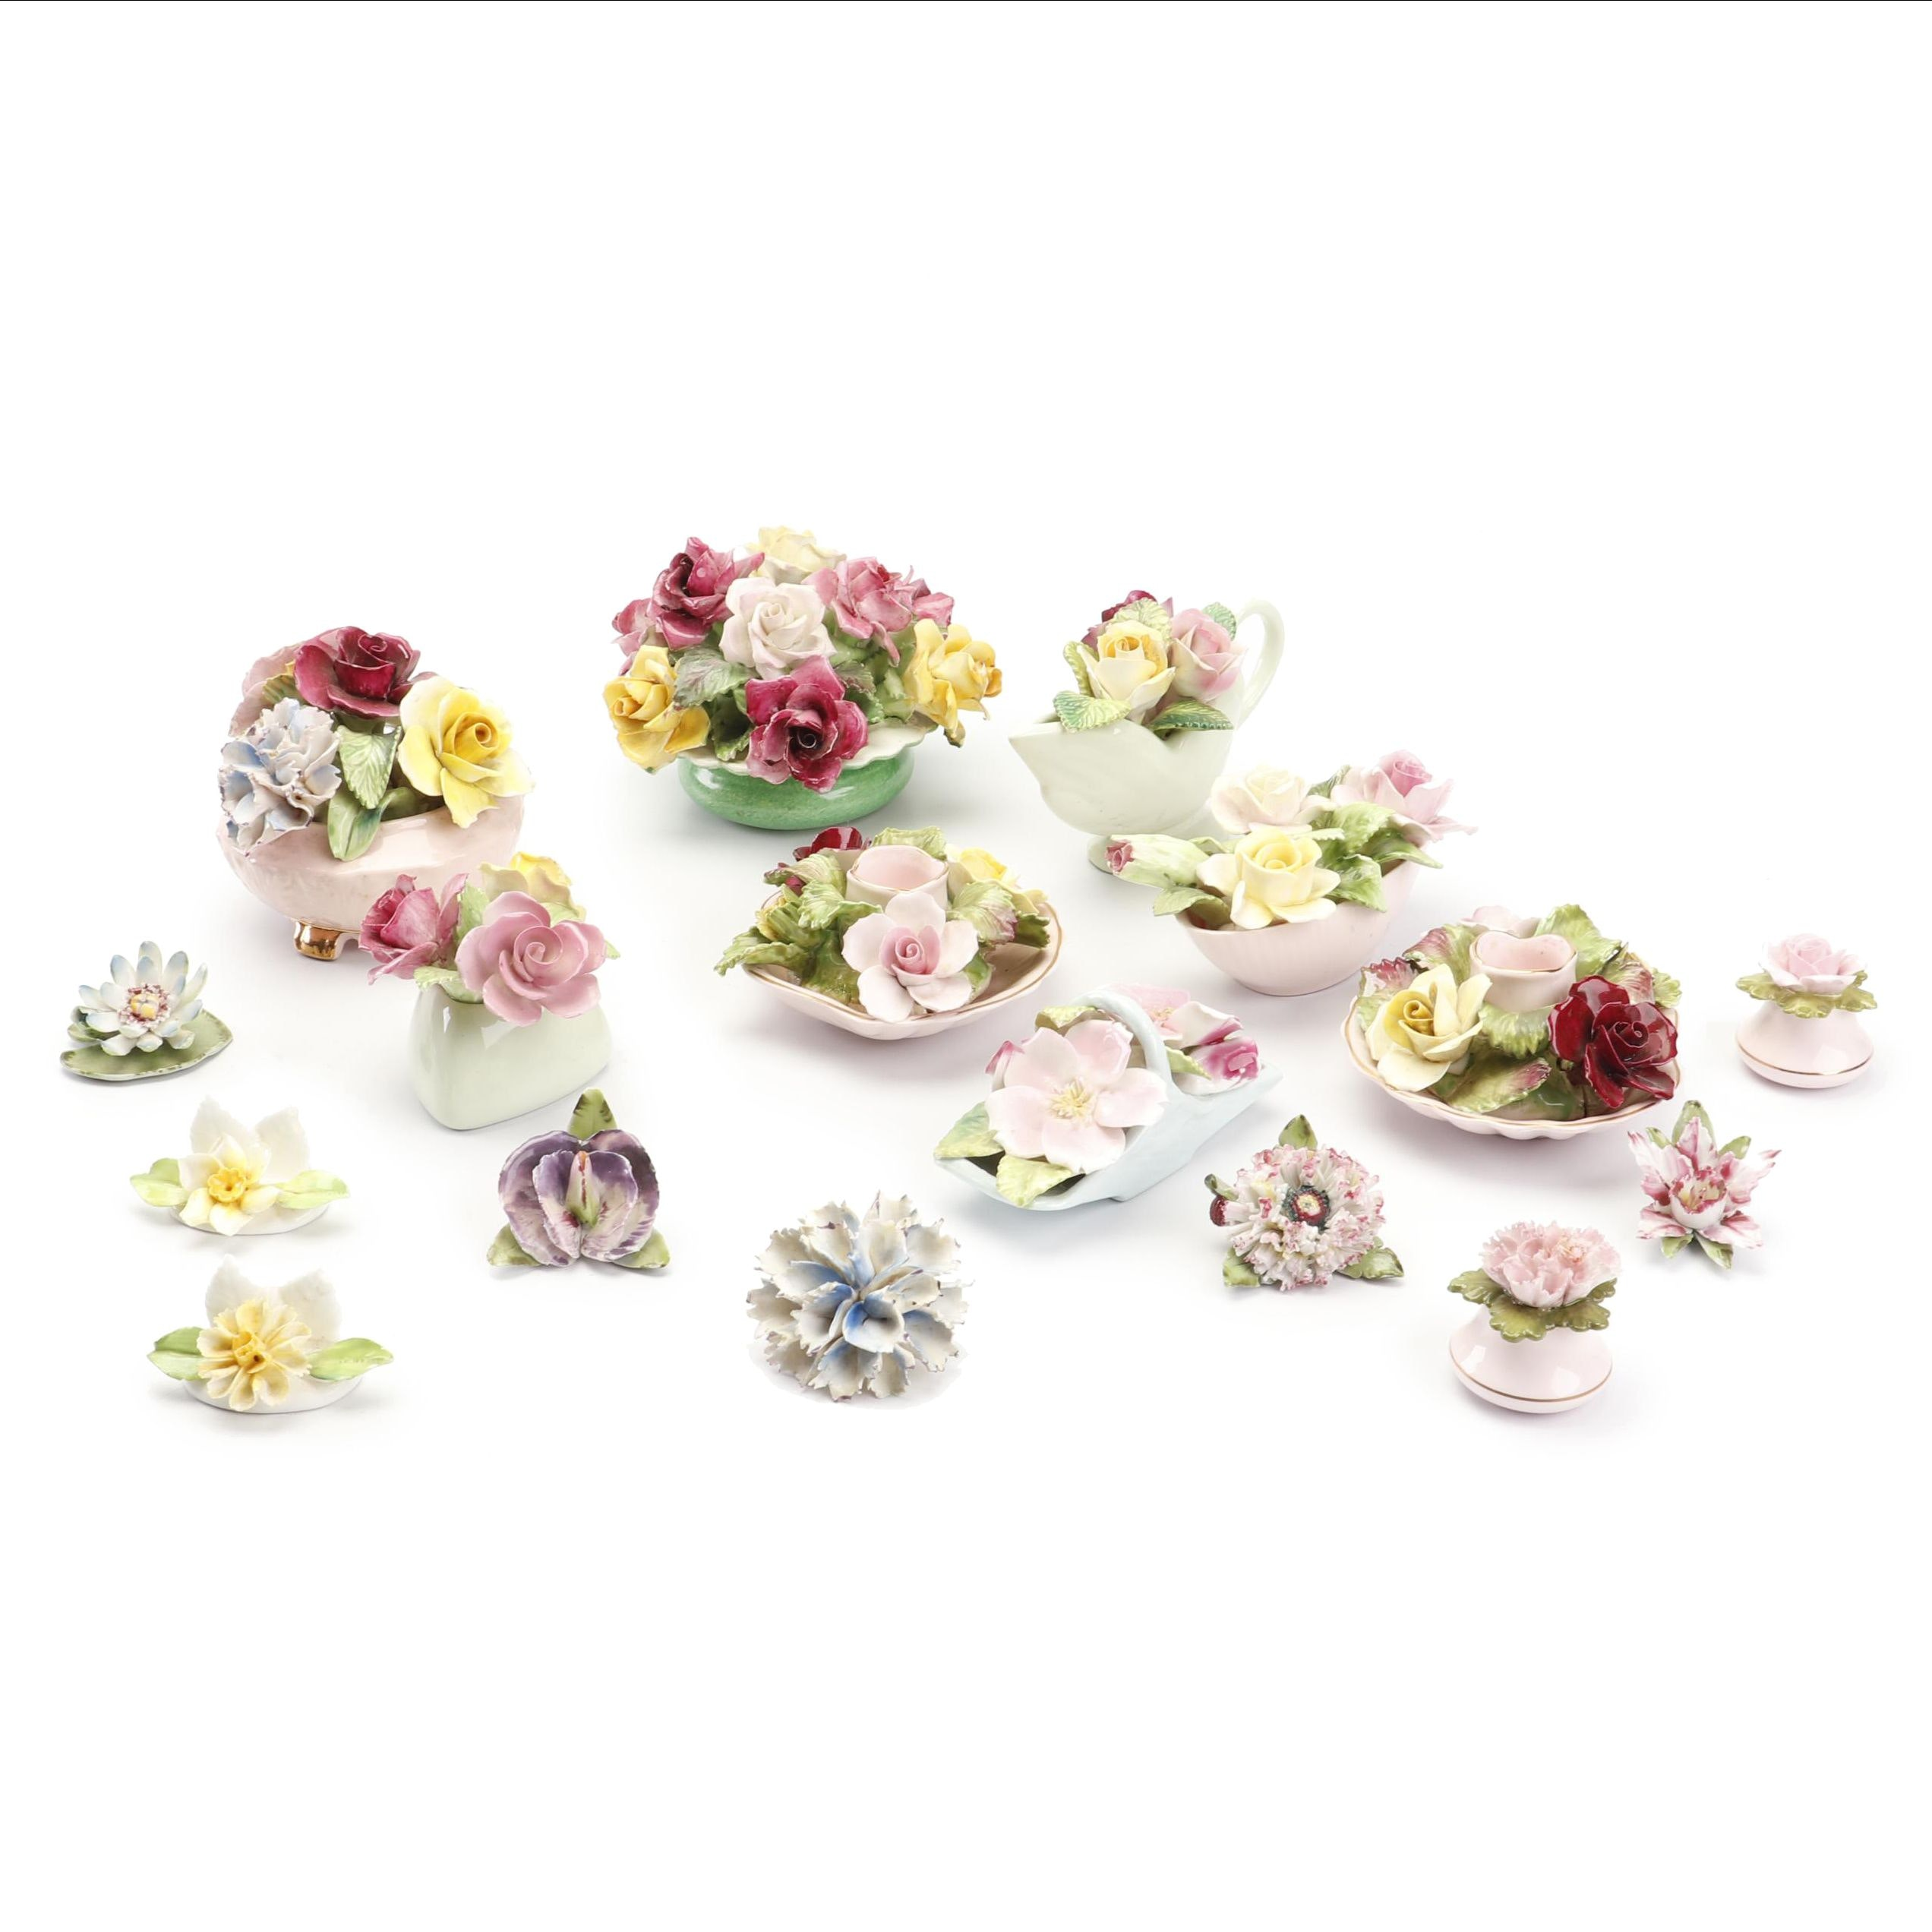 Collection of English China Floral Decor with Staffordshire, Coalport and More